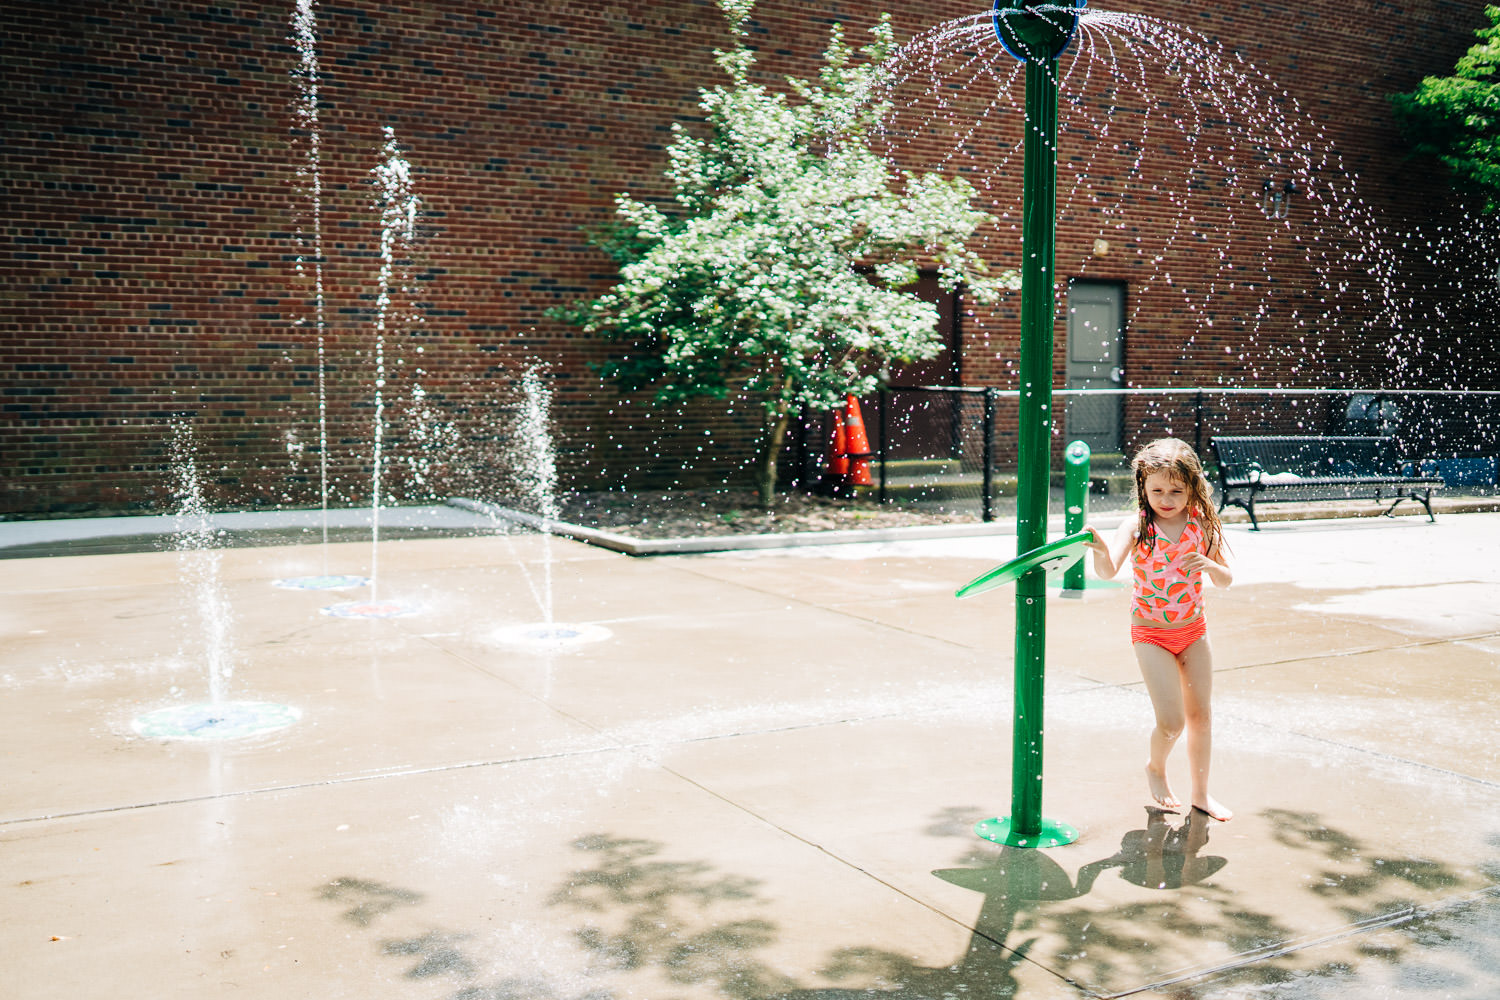 A little girl plays in a sprinkler at the park.